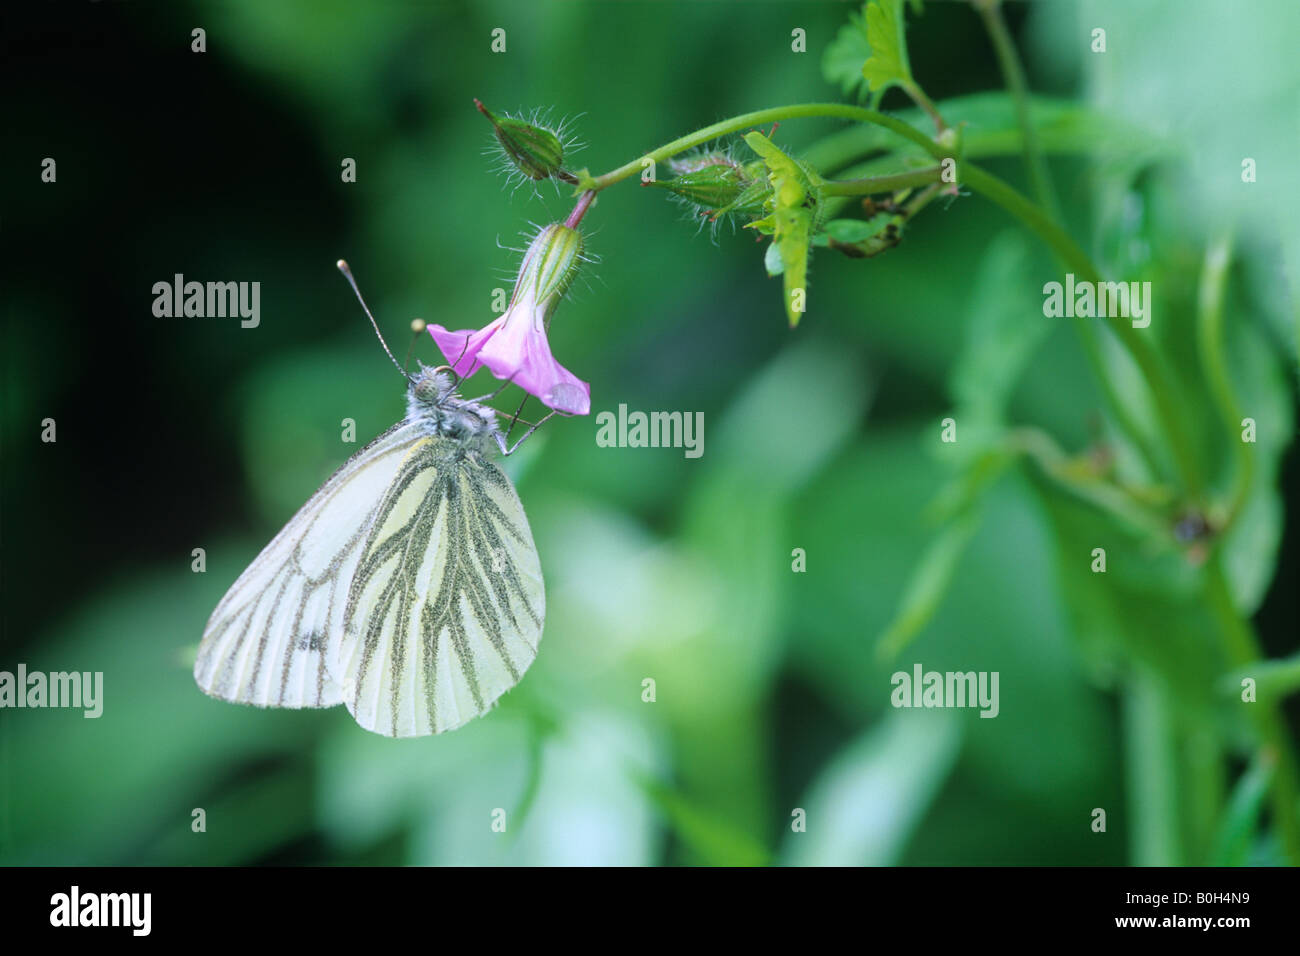 Green-Veined White Butterfly (Pieris napi) on Red Campion (Silene dioica) - Stock Image